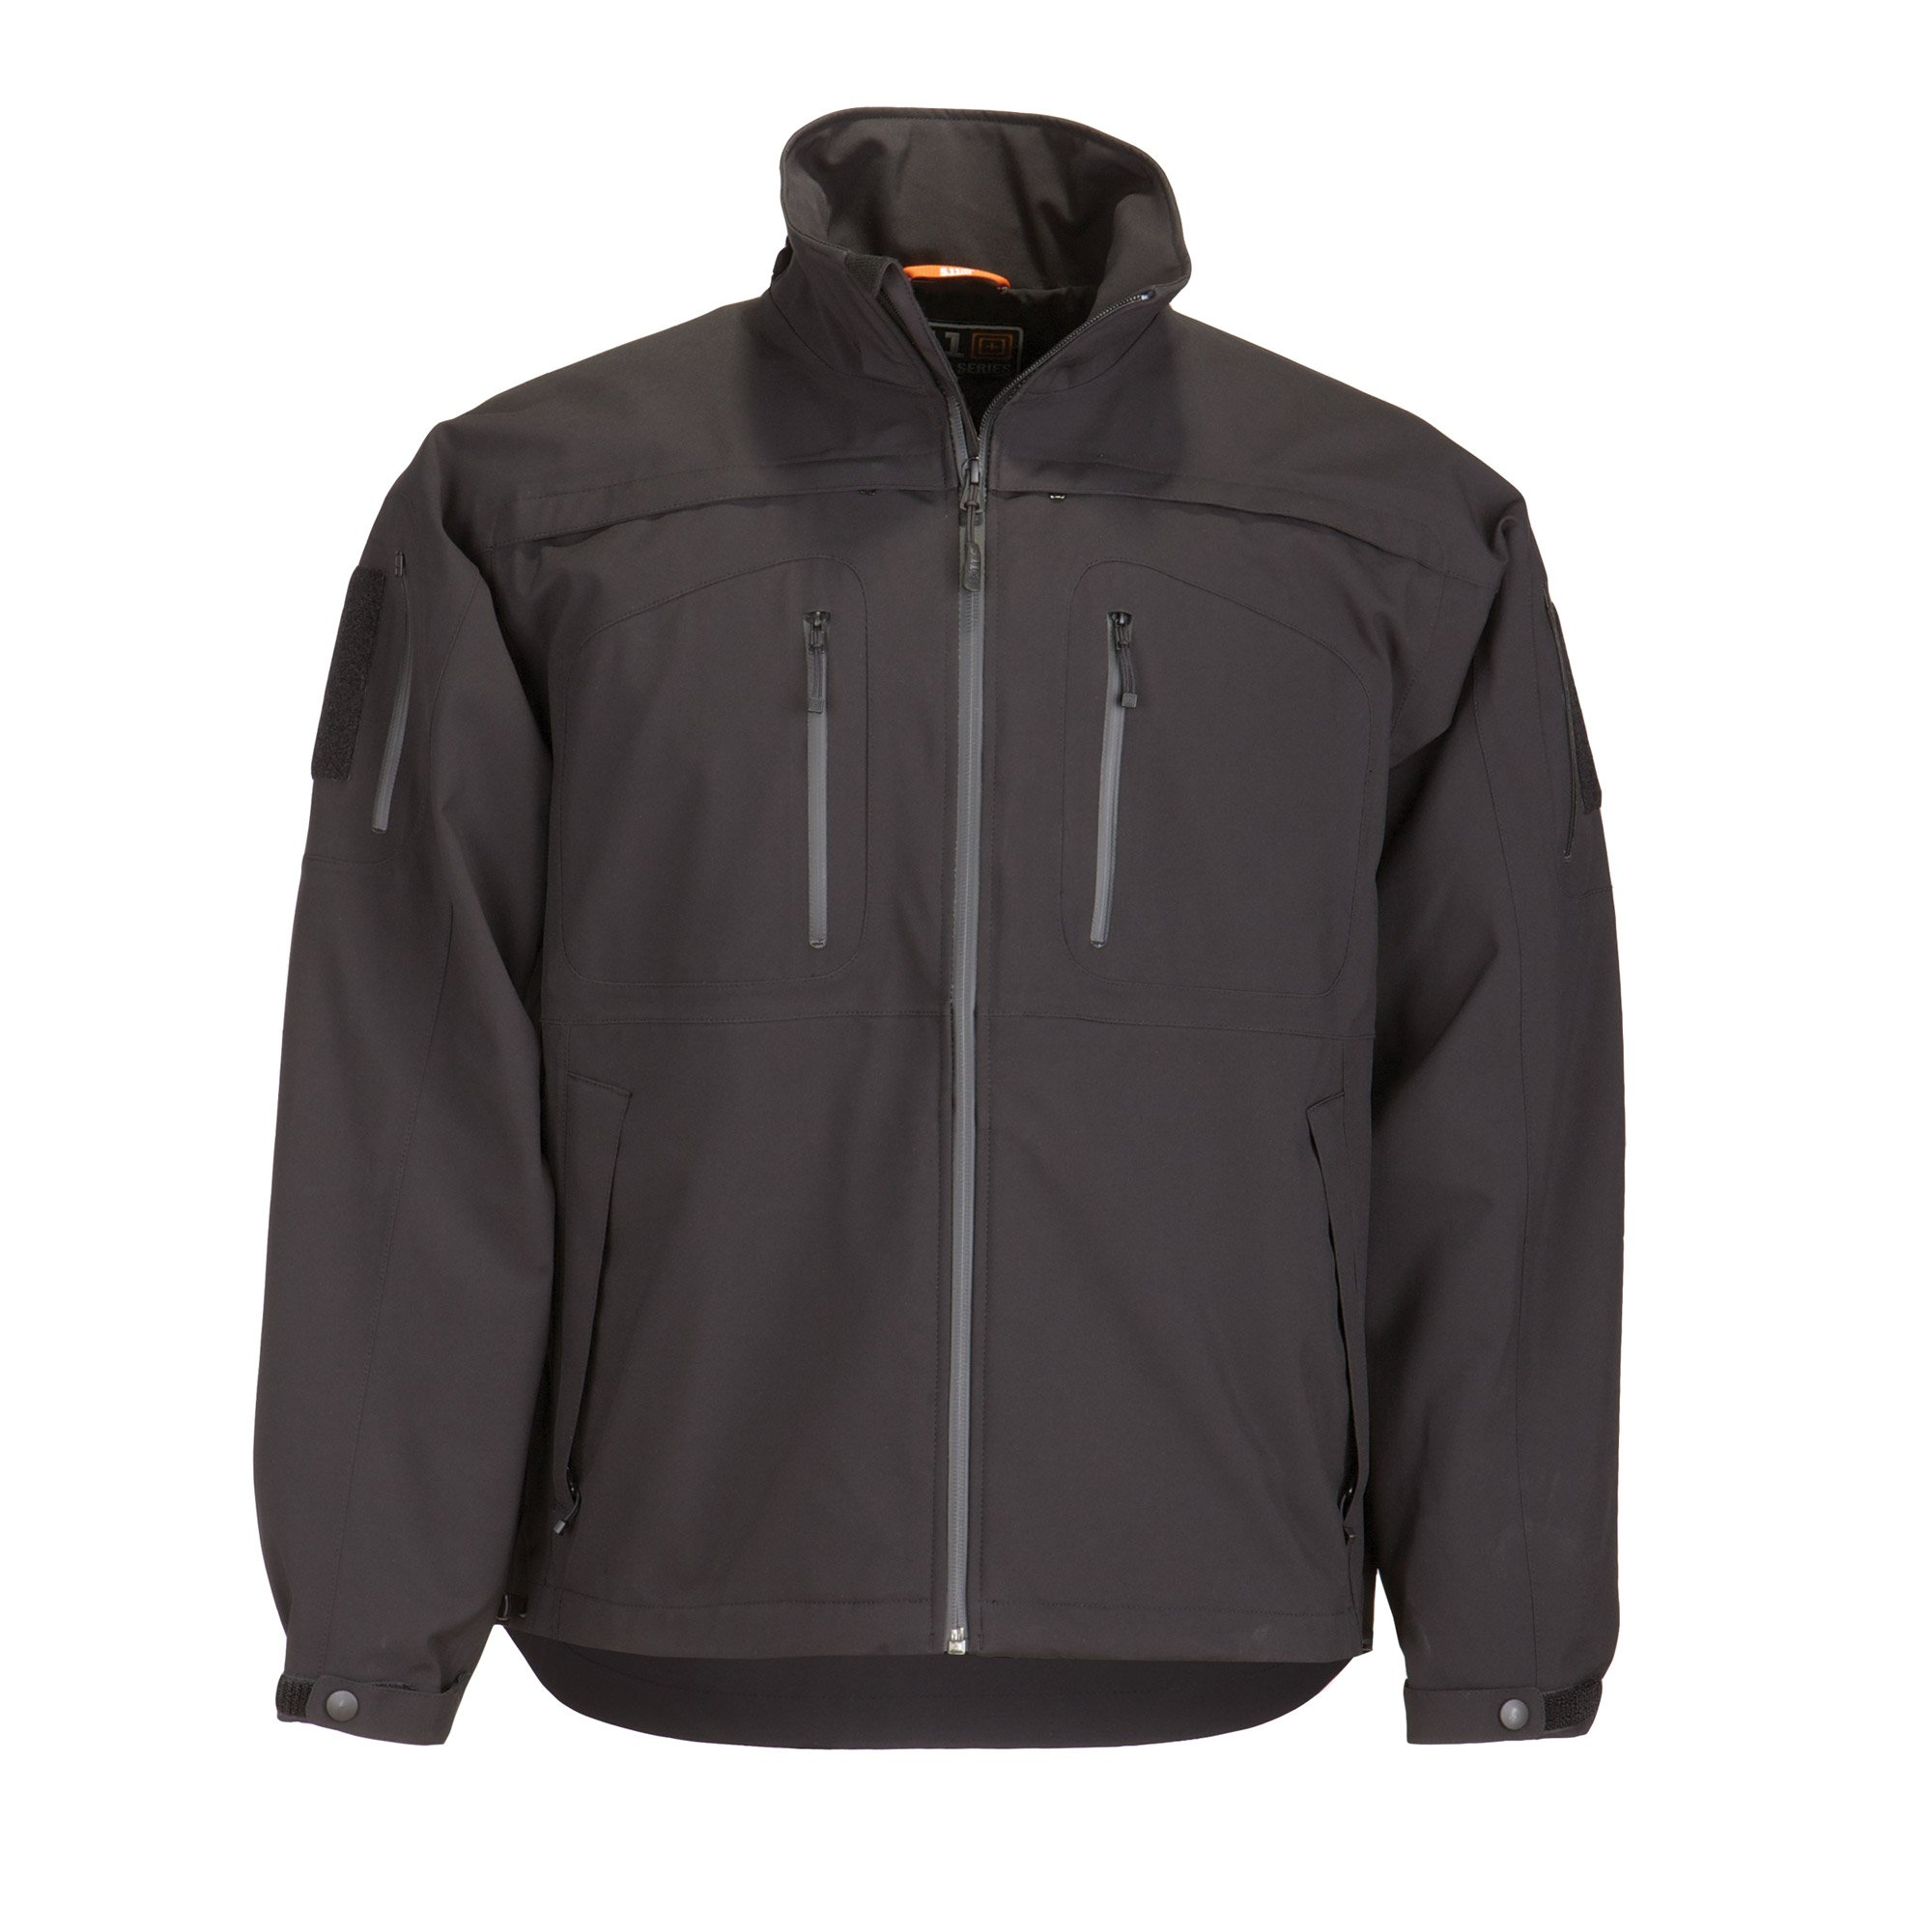 5.11 Tactical Sabre 2.0 Jacket by 5.11